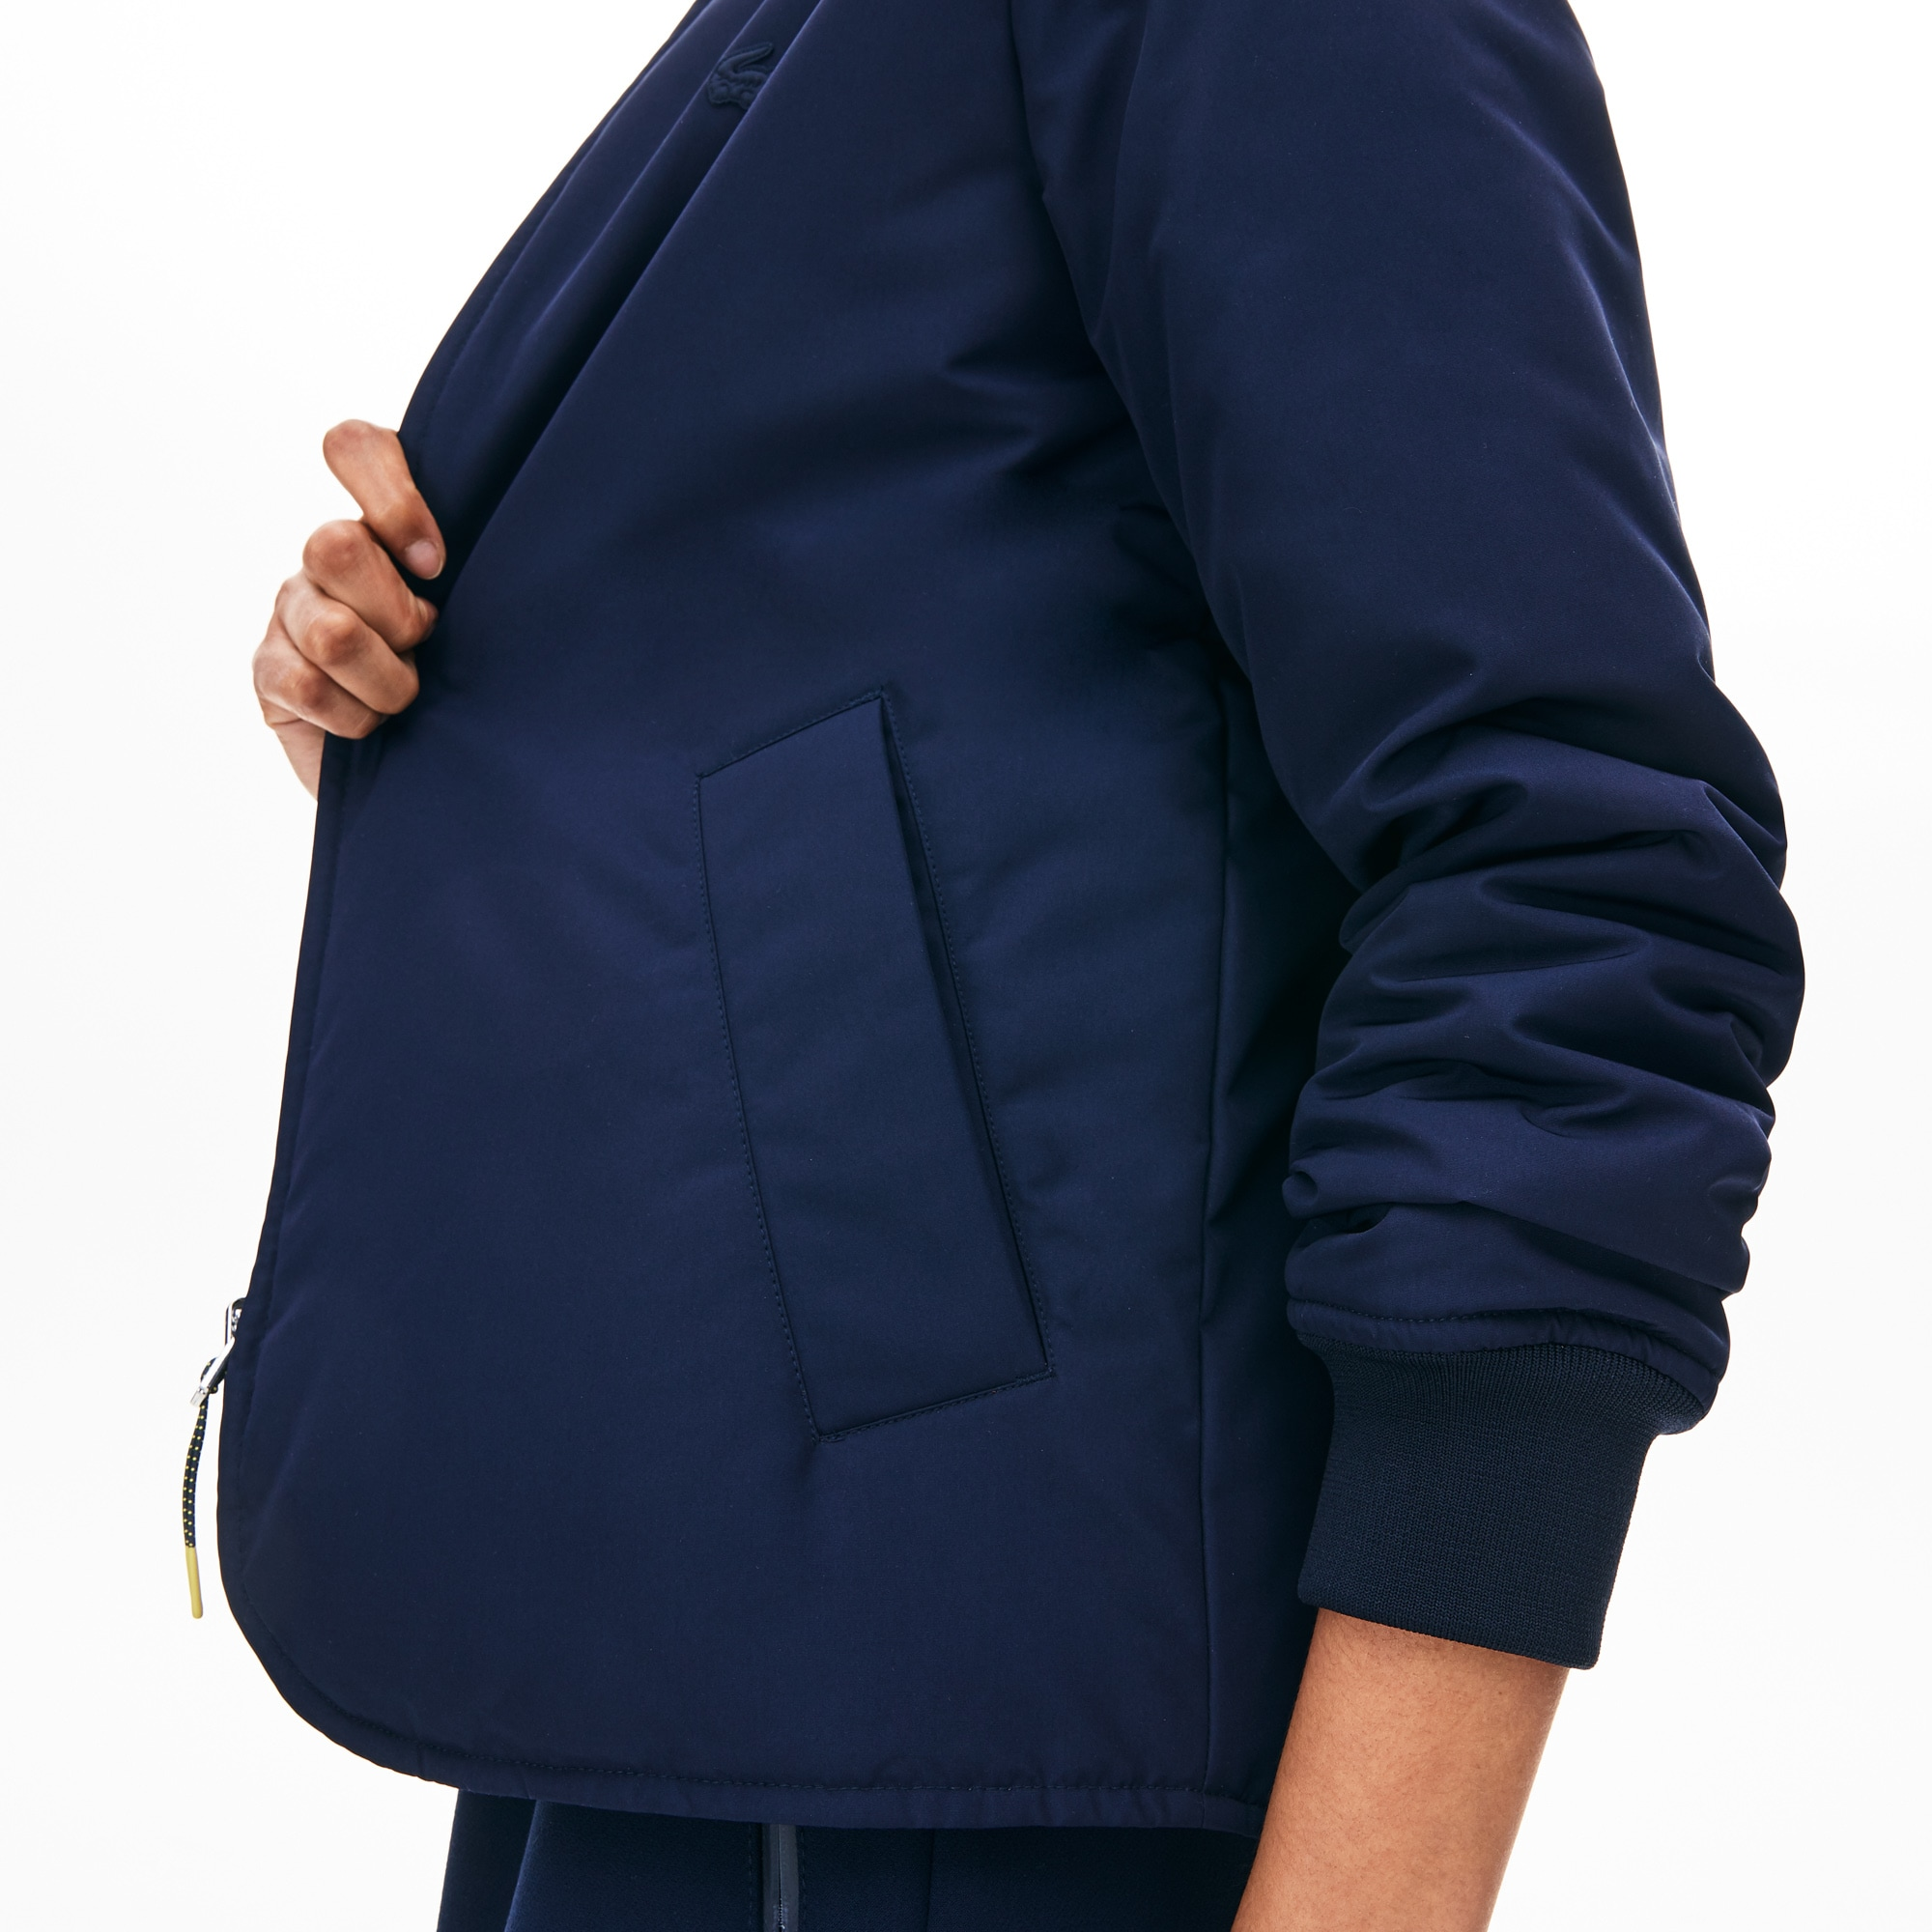 Women's Seamlessly Quilted Reversible Bi-Material Rain Jacket